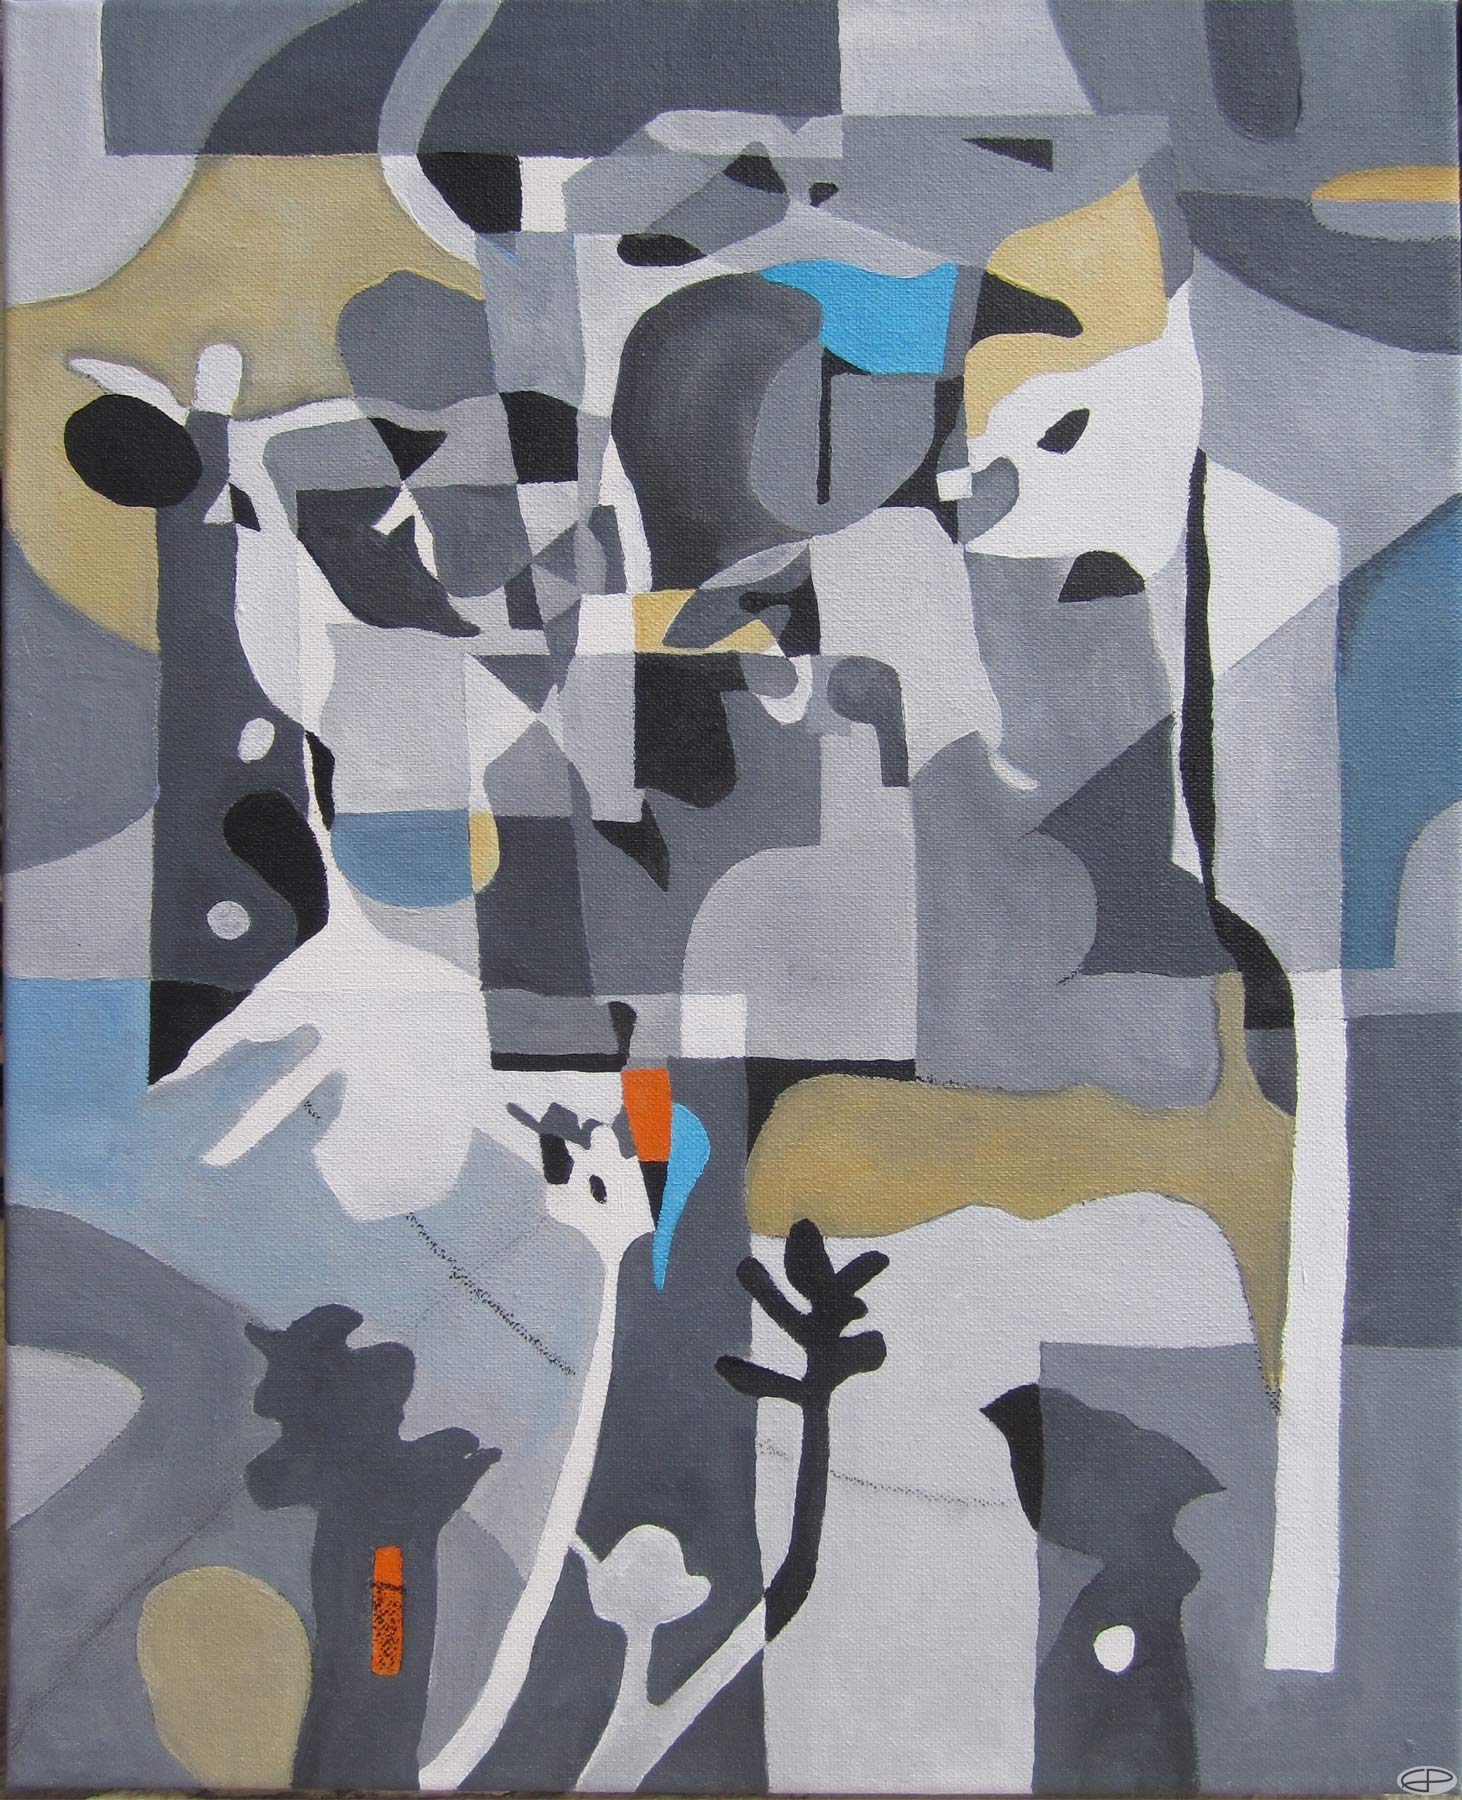 Eric Pedersen: Abstract Painting based on Shadows